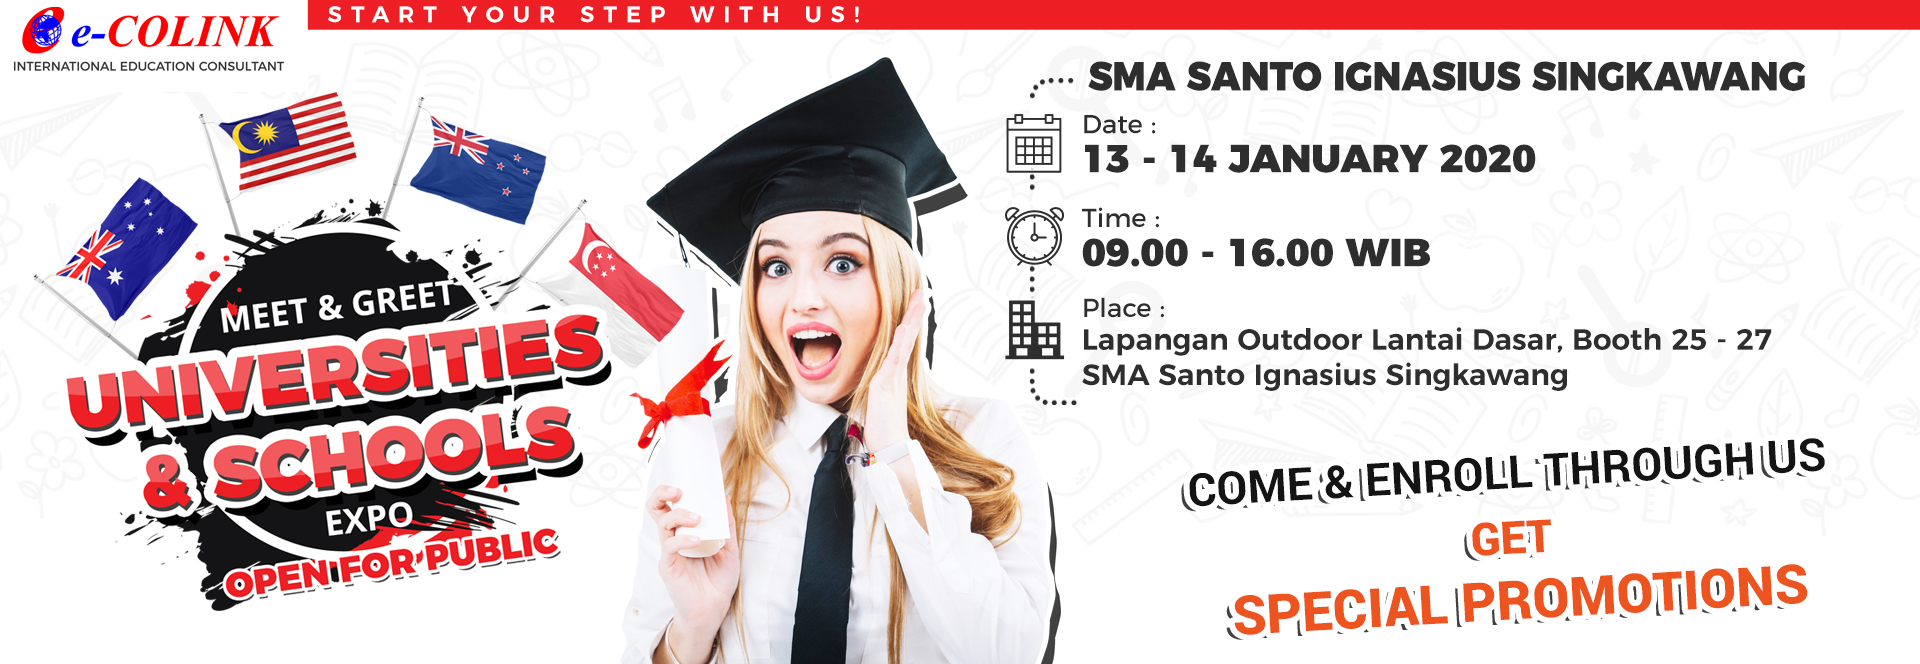 INTERNATIONAL EDUCATION EXPO 2020 - SINGKAWANG - SMA SANTO IGNASIUS SINGKAWANG